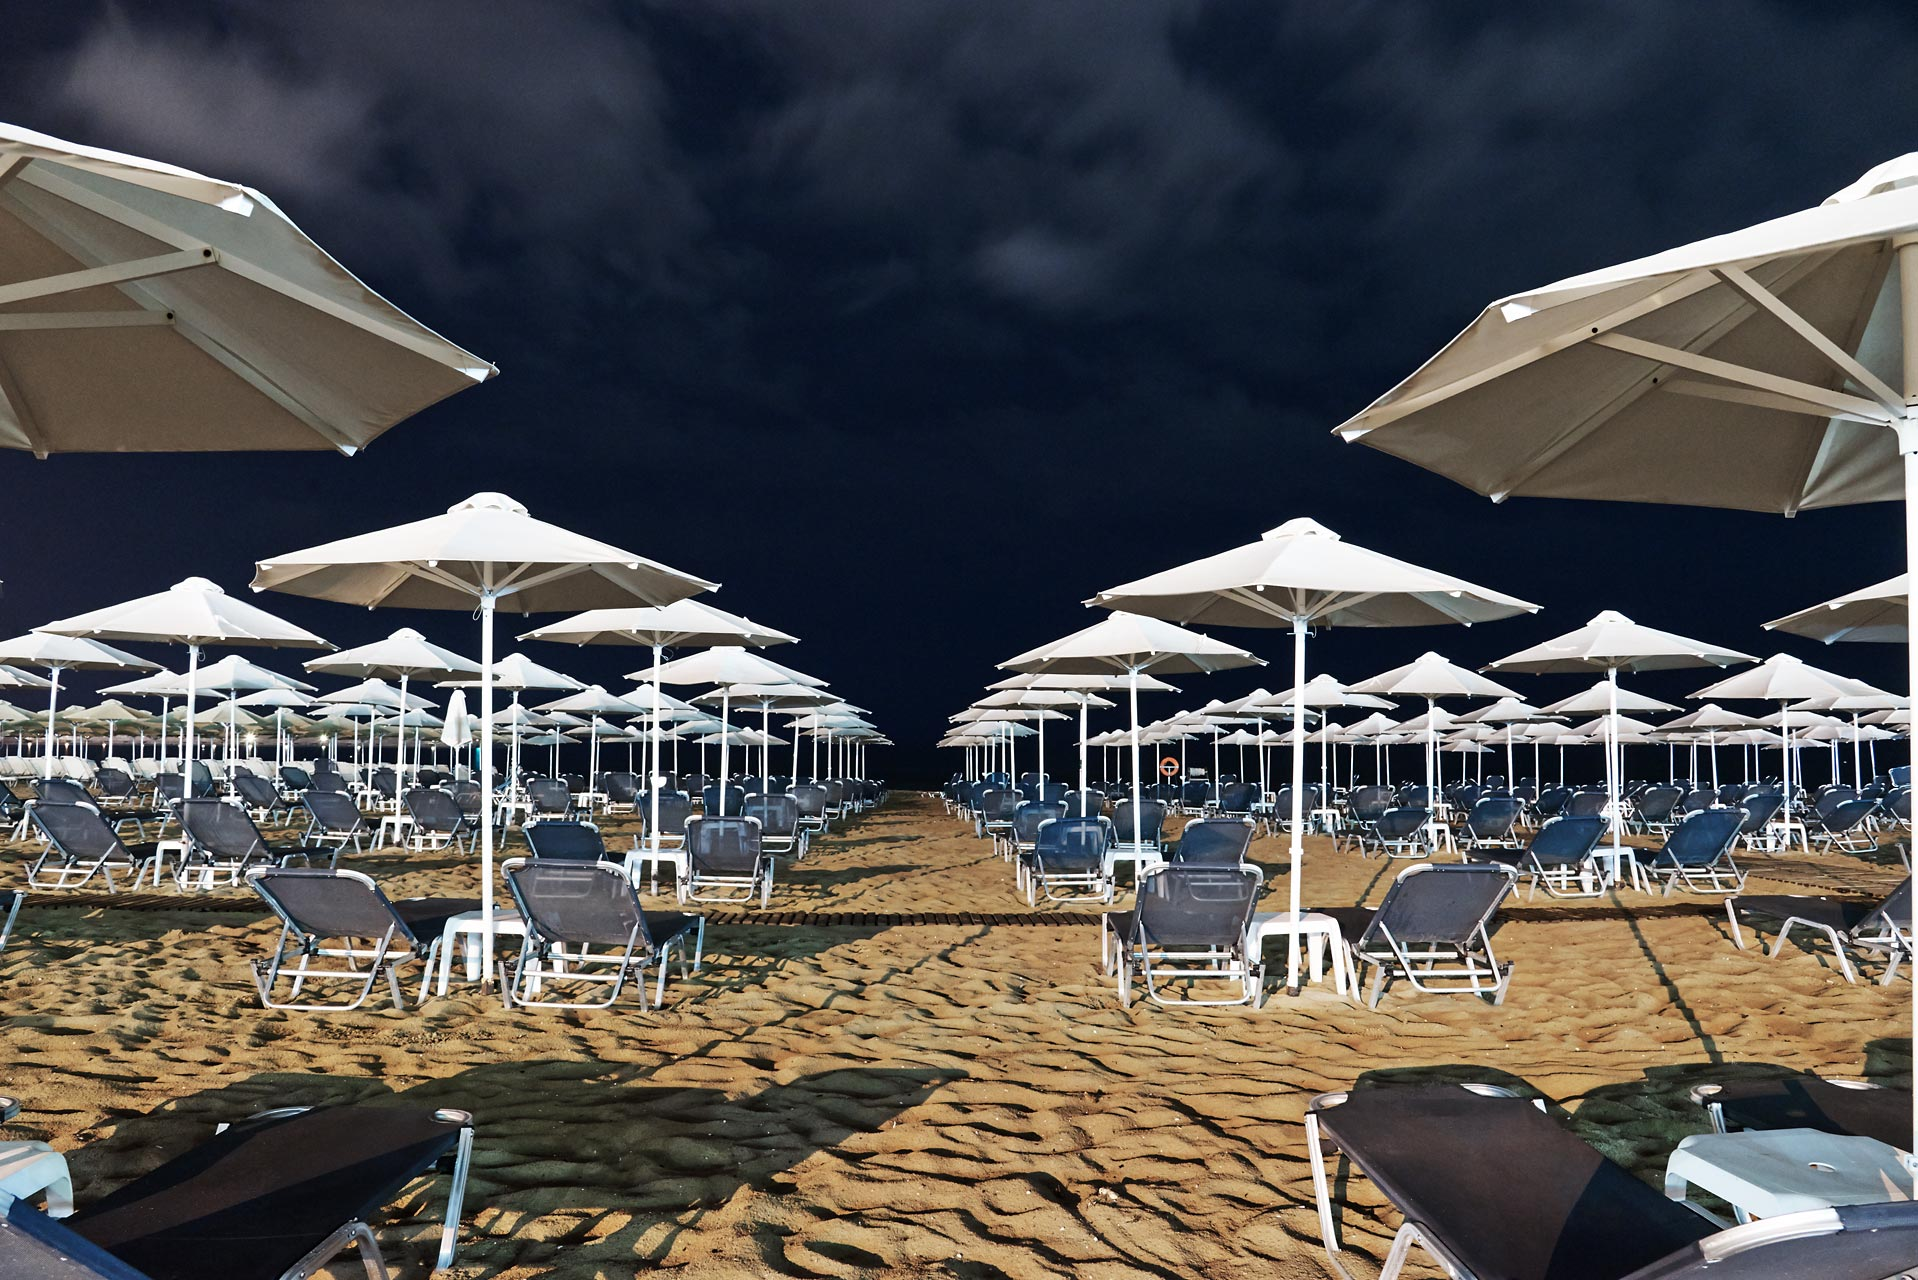 Sabine-Scheer-crete-private-beach-parasol